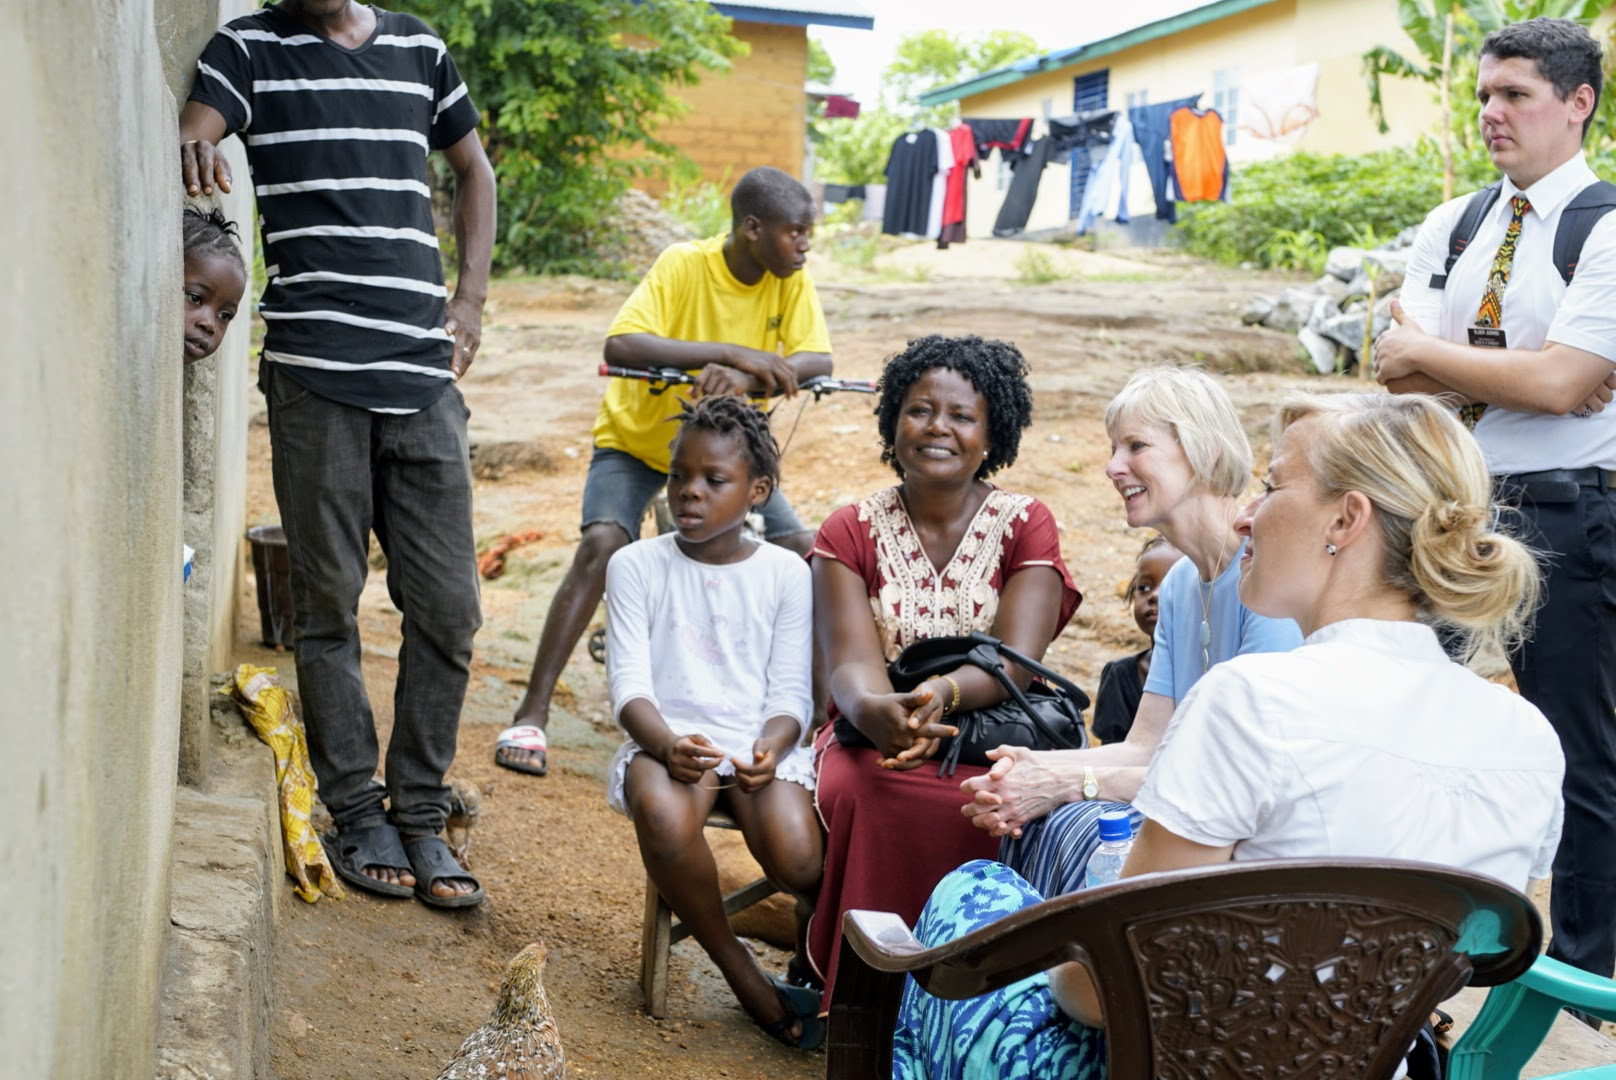 Sister Jean B. Bingham and members of the Gospel Literacy team meet with Church members in their home in Sierra Leone. Sister Bingham, Relief Society general president, visited the West African country June 5 through June 16.